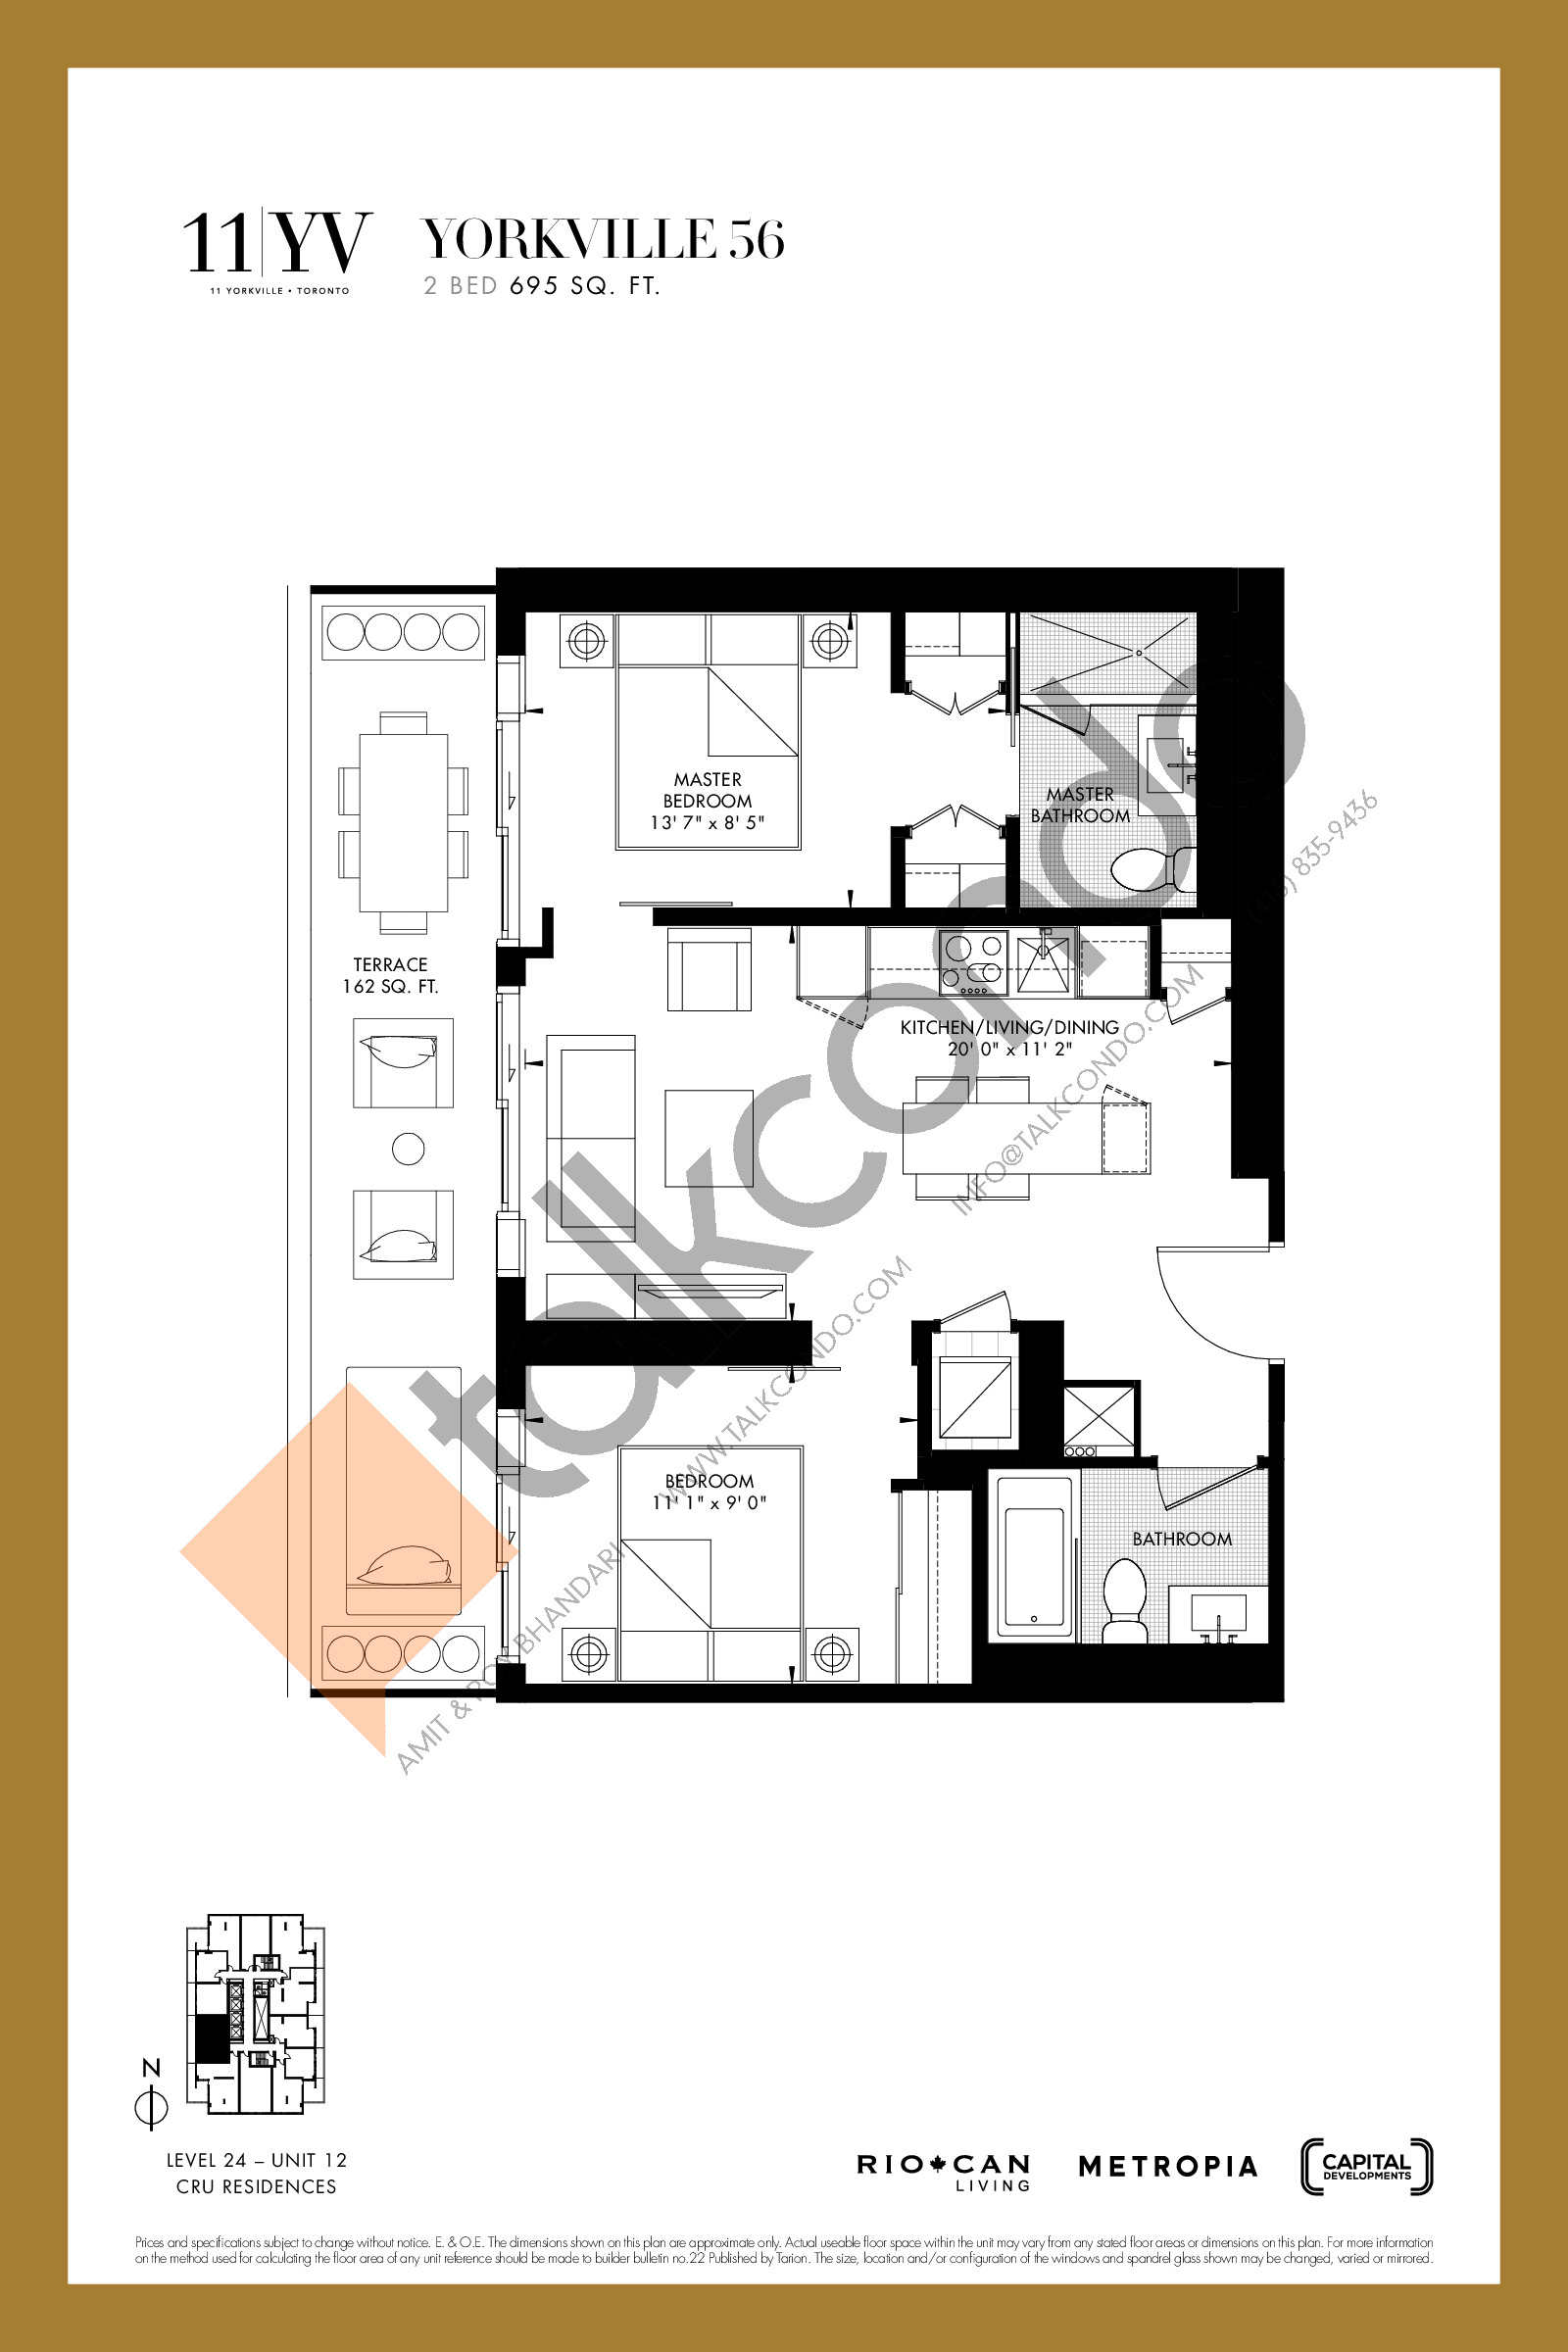 Yorkville 56 Floor Plan at 11YV Condos - 695 sq.ft